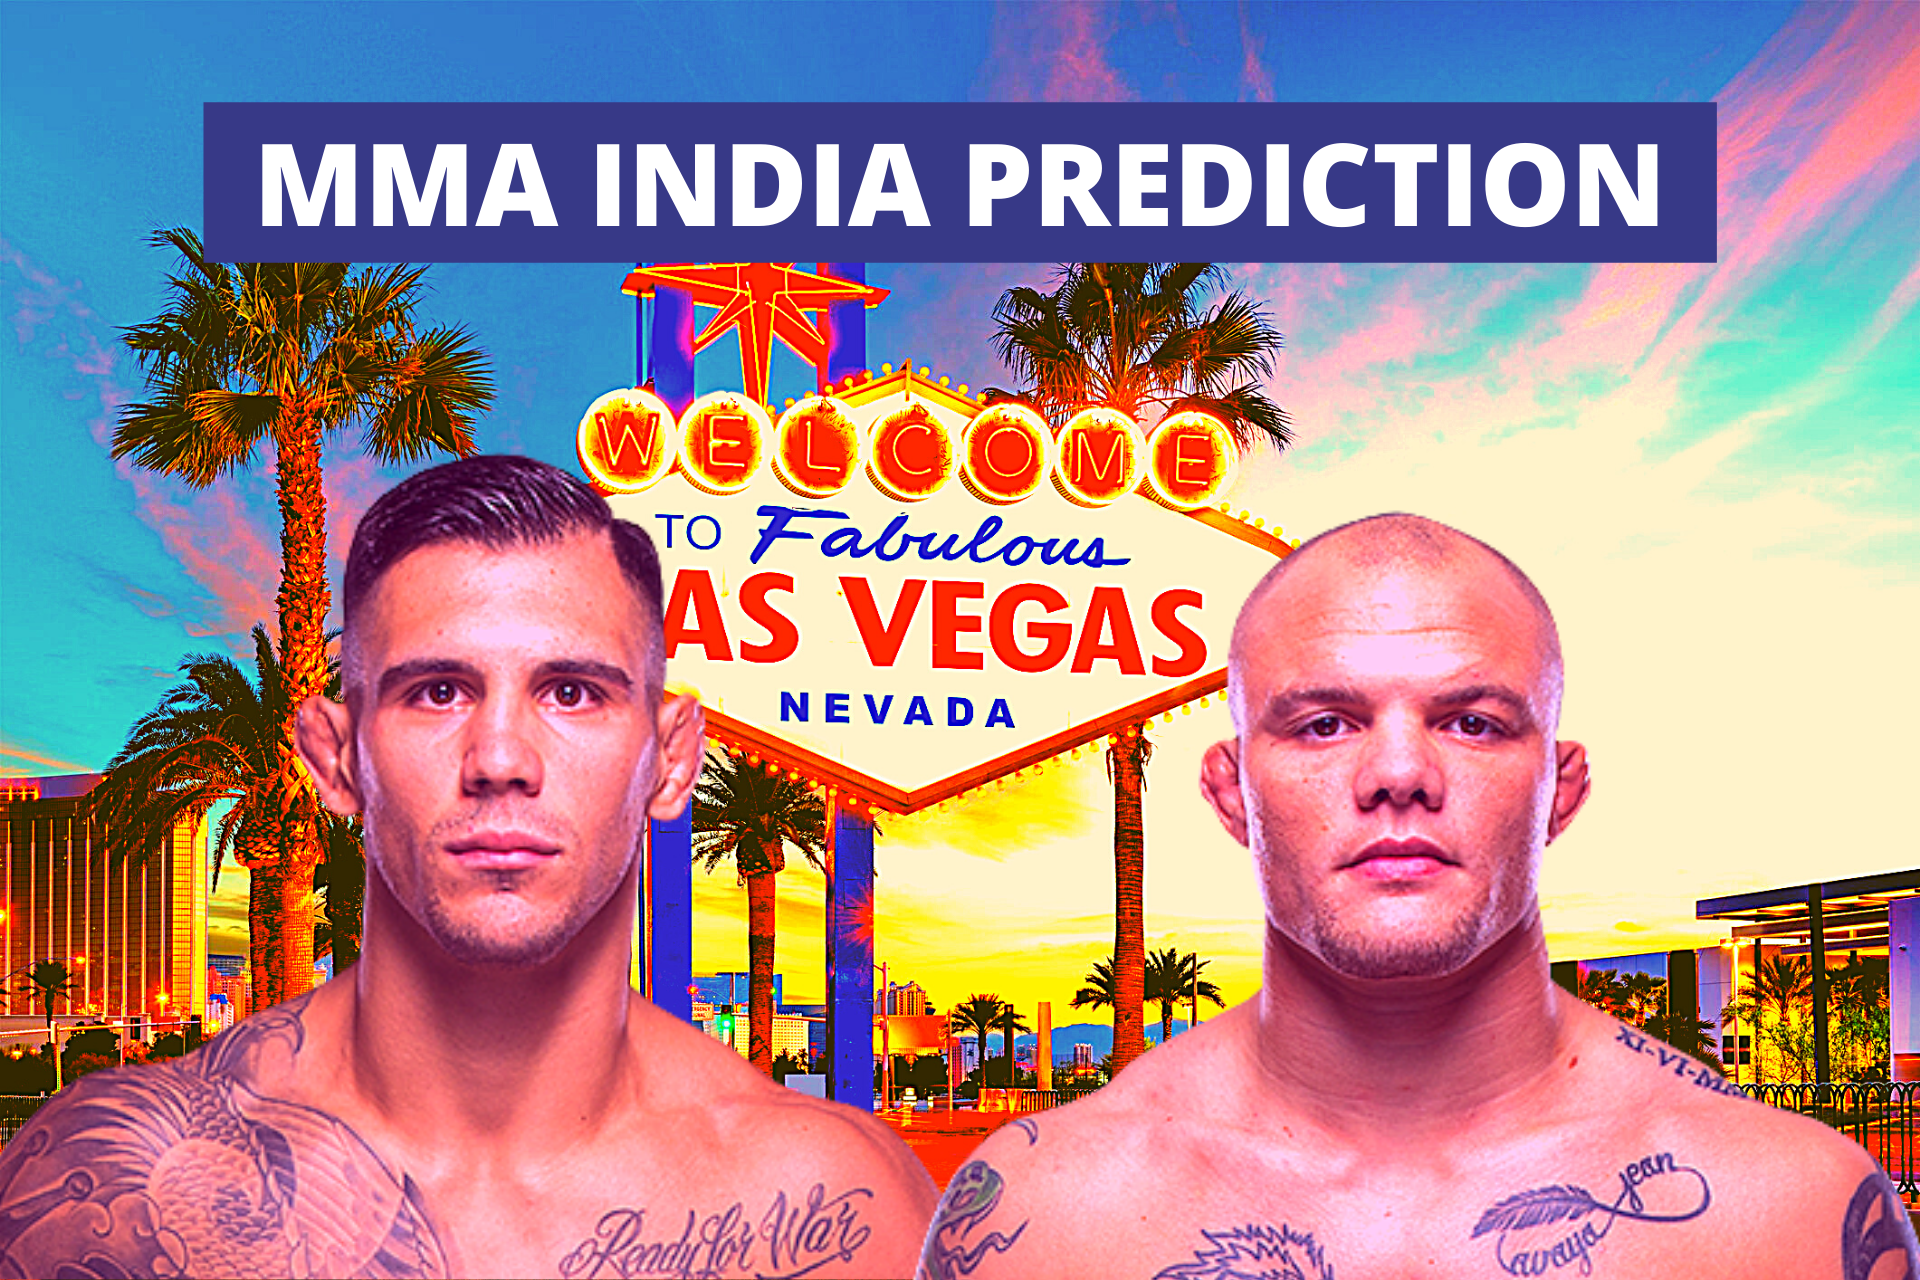 UFC Vegas 8: Anthony Smith vs Aleksandar Rakic Odds, Prediction, Verdict - Anthony Smith